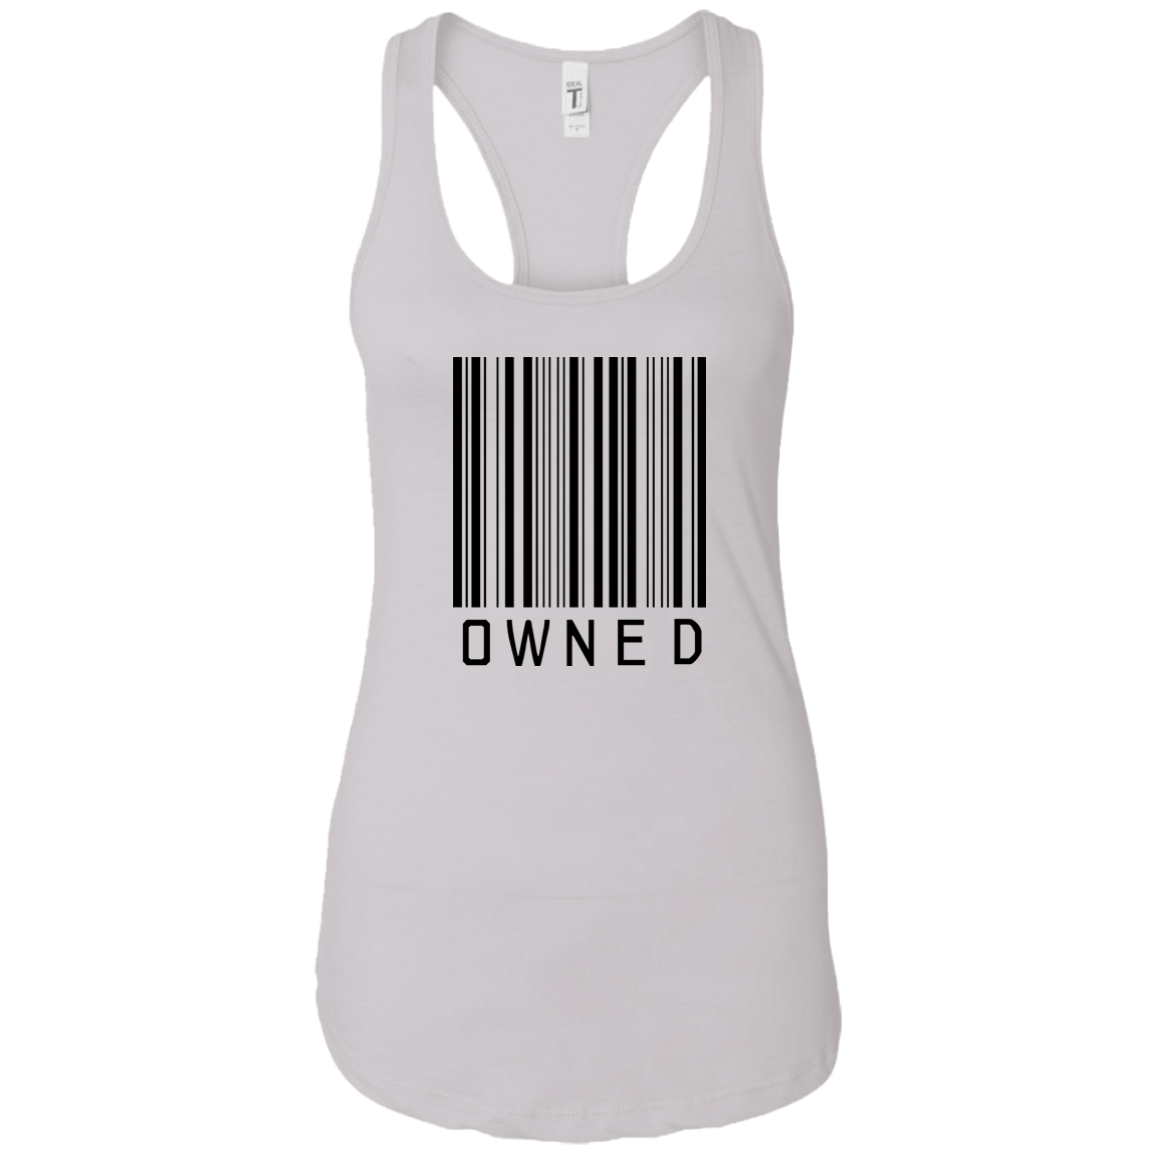 Owned Women Racerback Tank Top